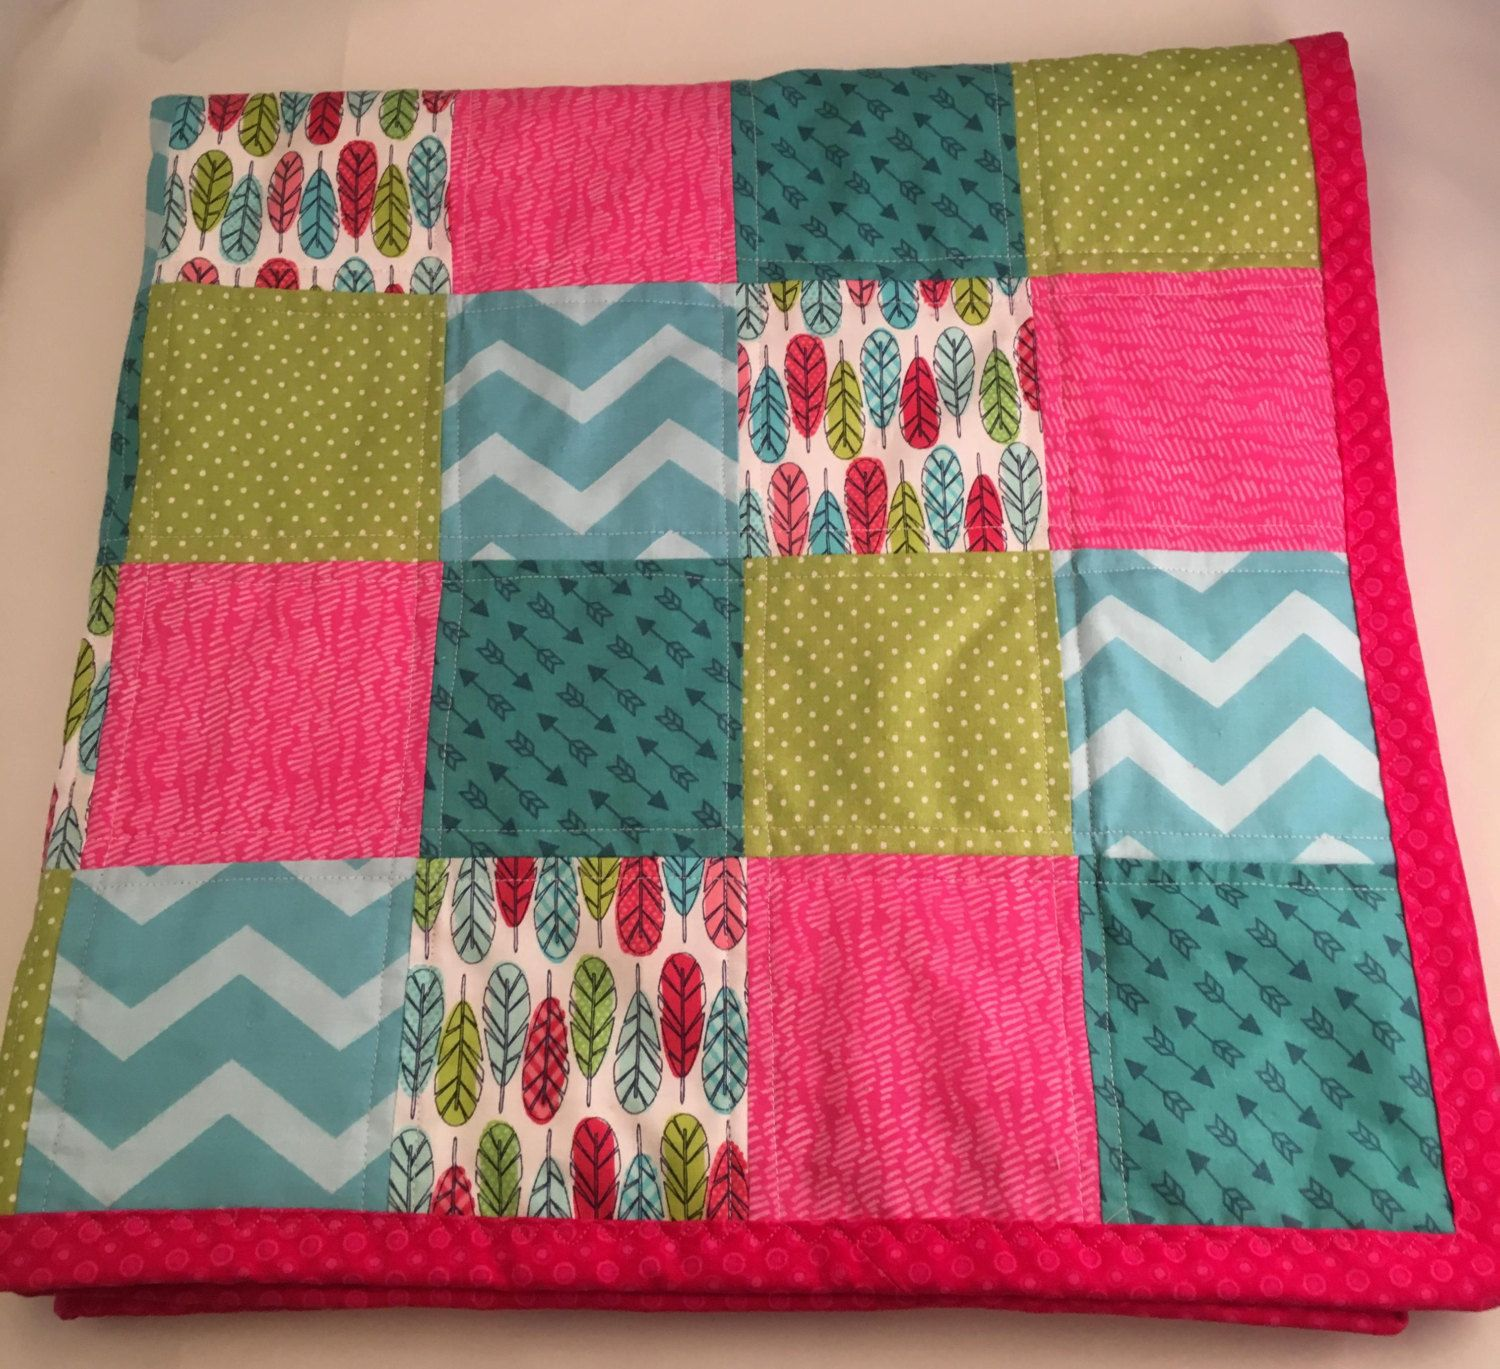 Feather and Arrow Baby Quilt/Feather/Arrow/Chevron/ Polka Dot Baby Blanket/Hot Pink Minky Blanket by OccasionalGoods on Etsy